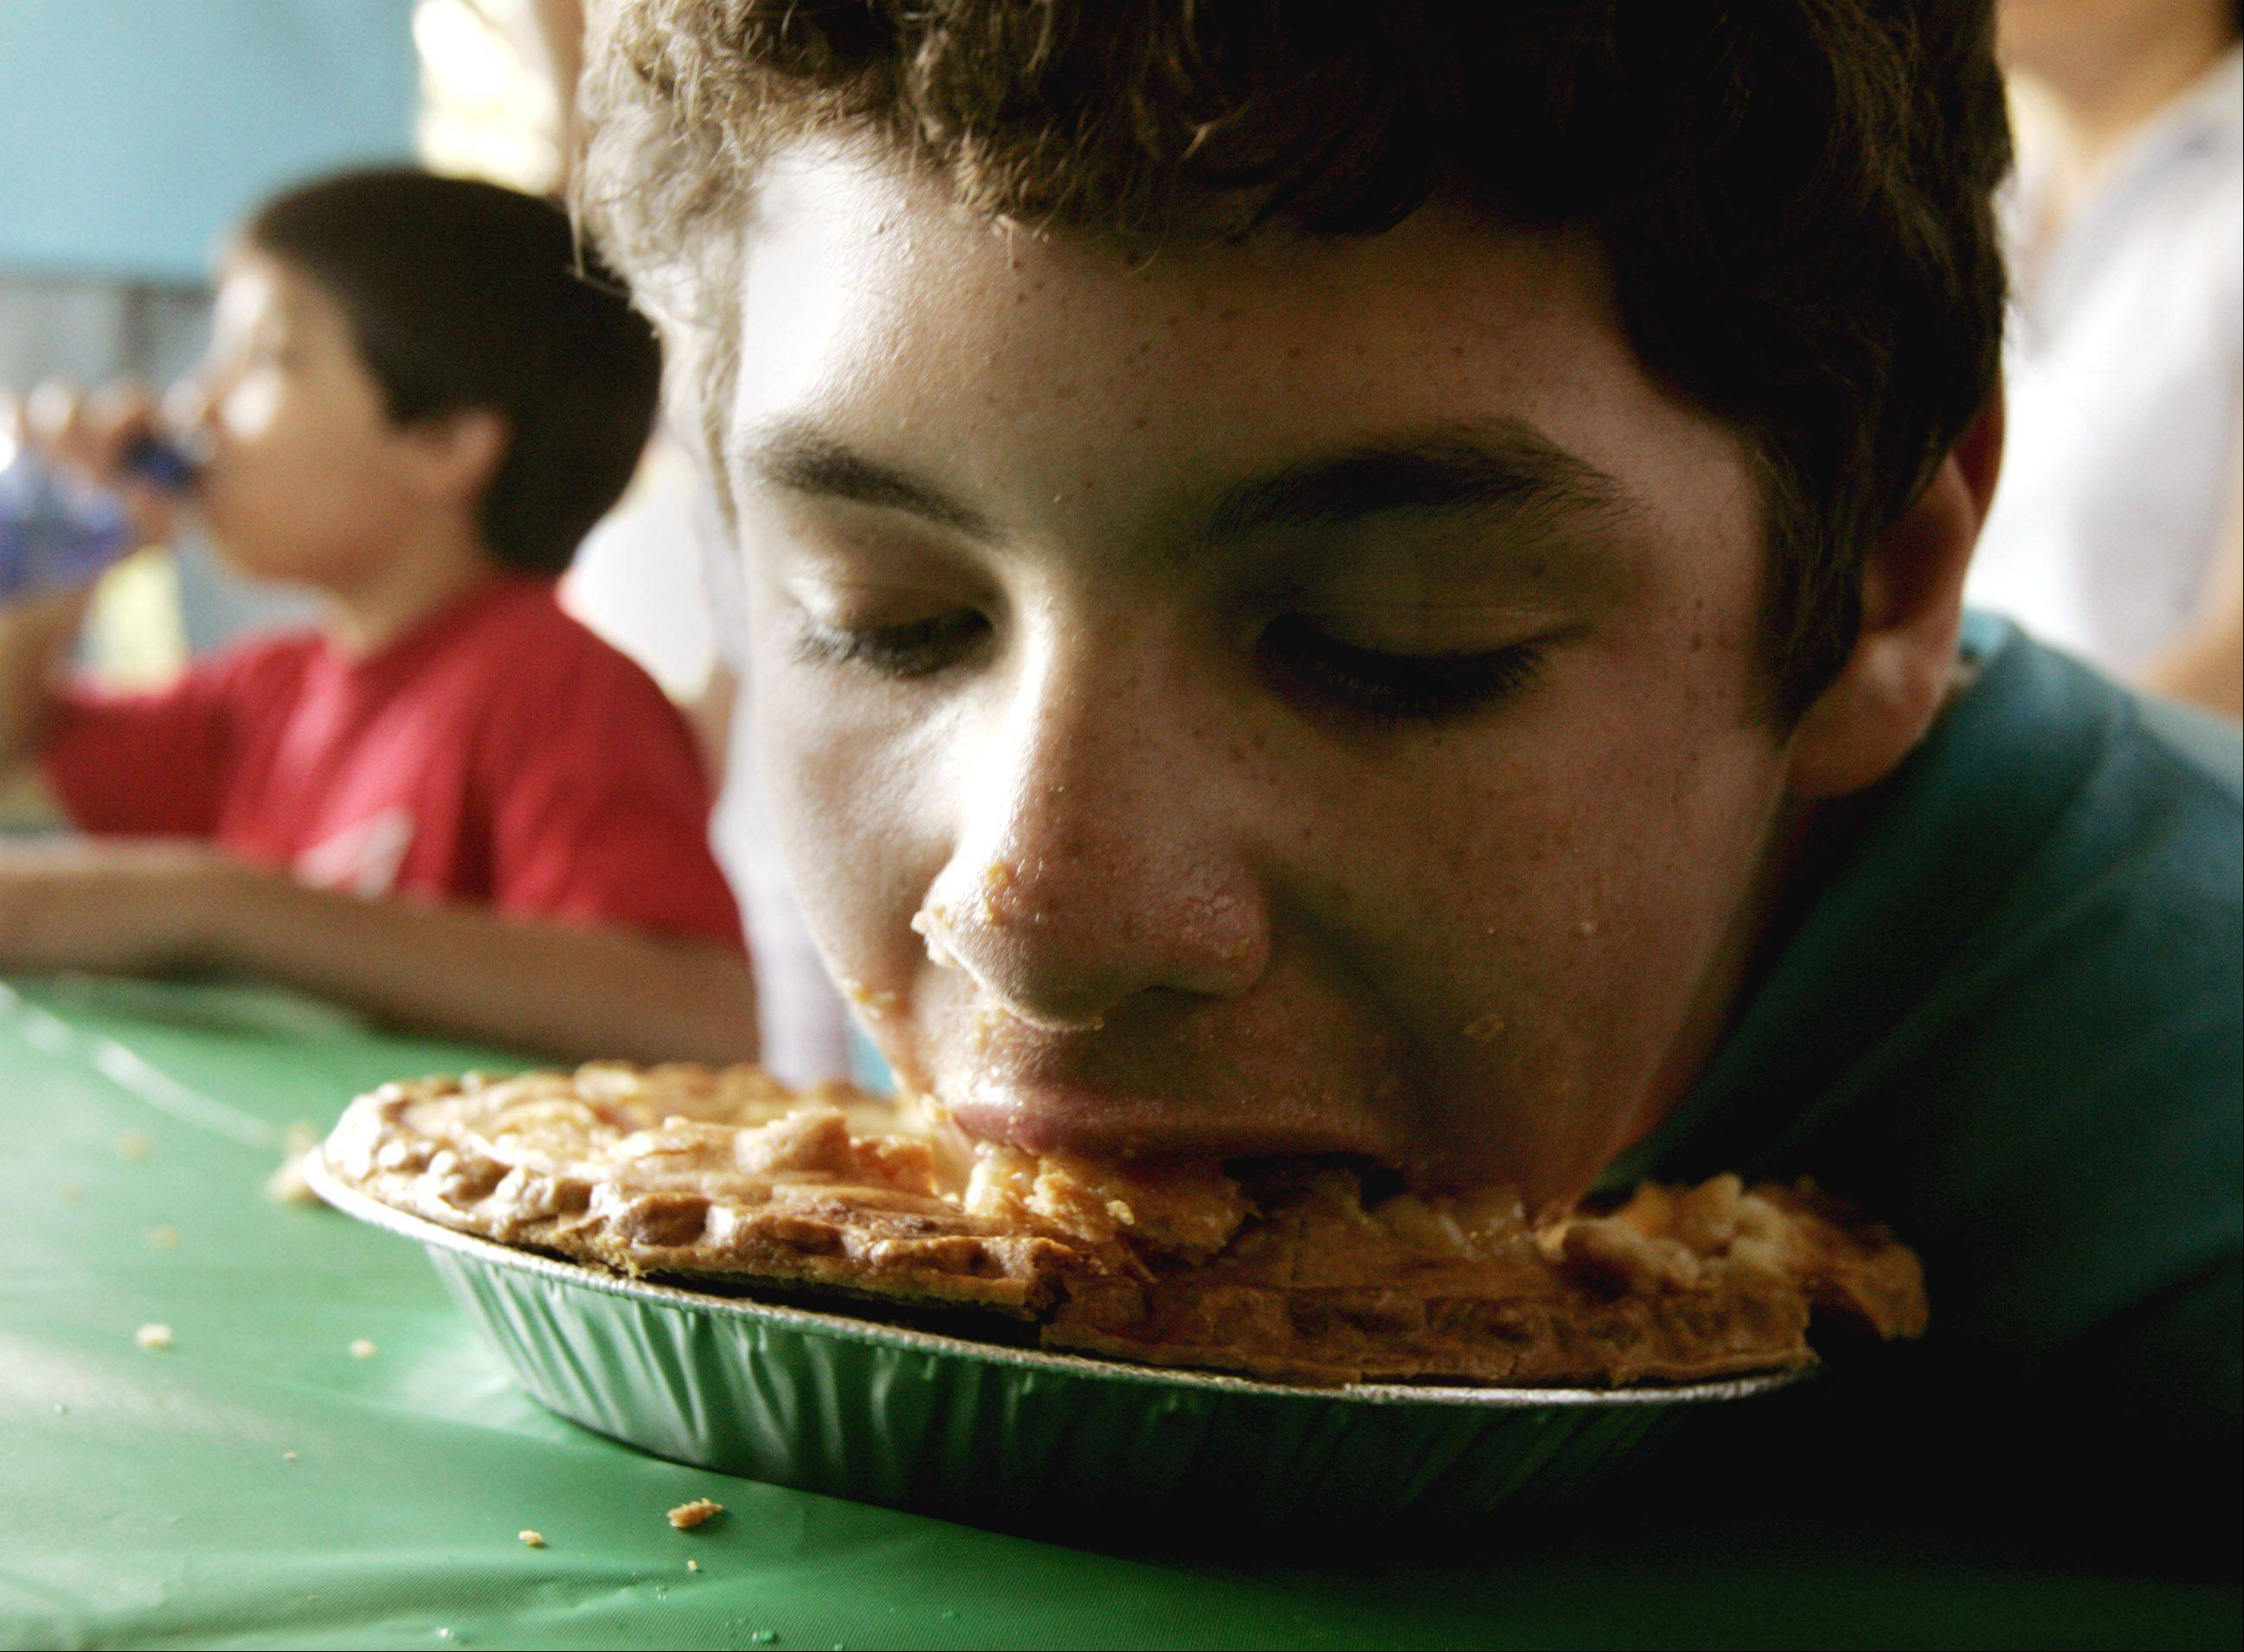 Eating contests featuring pies, ice cream and spaghetti are part of the fun at the Naperville Jaycees annual Last Fling, which begins at 6 p.m. Friday.